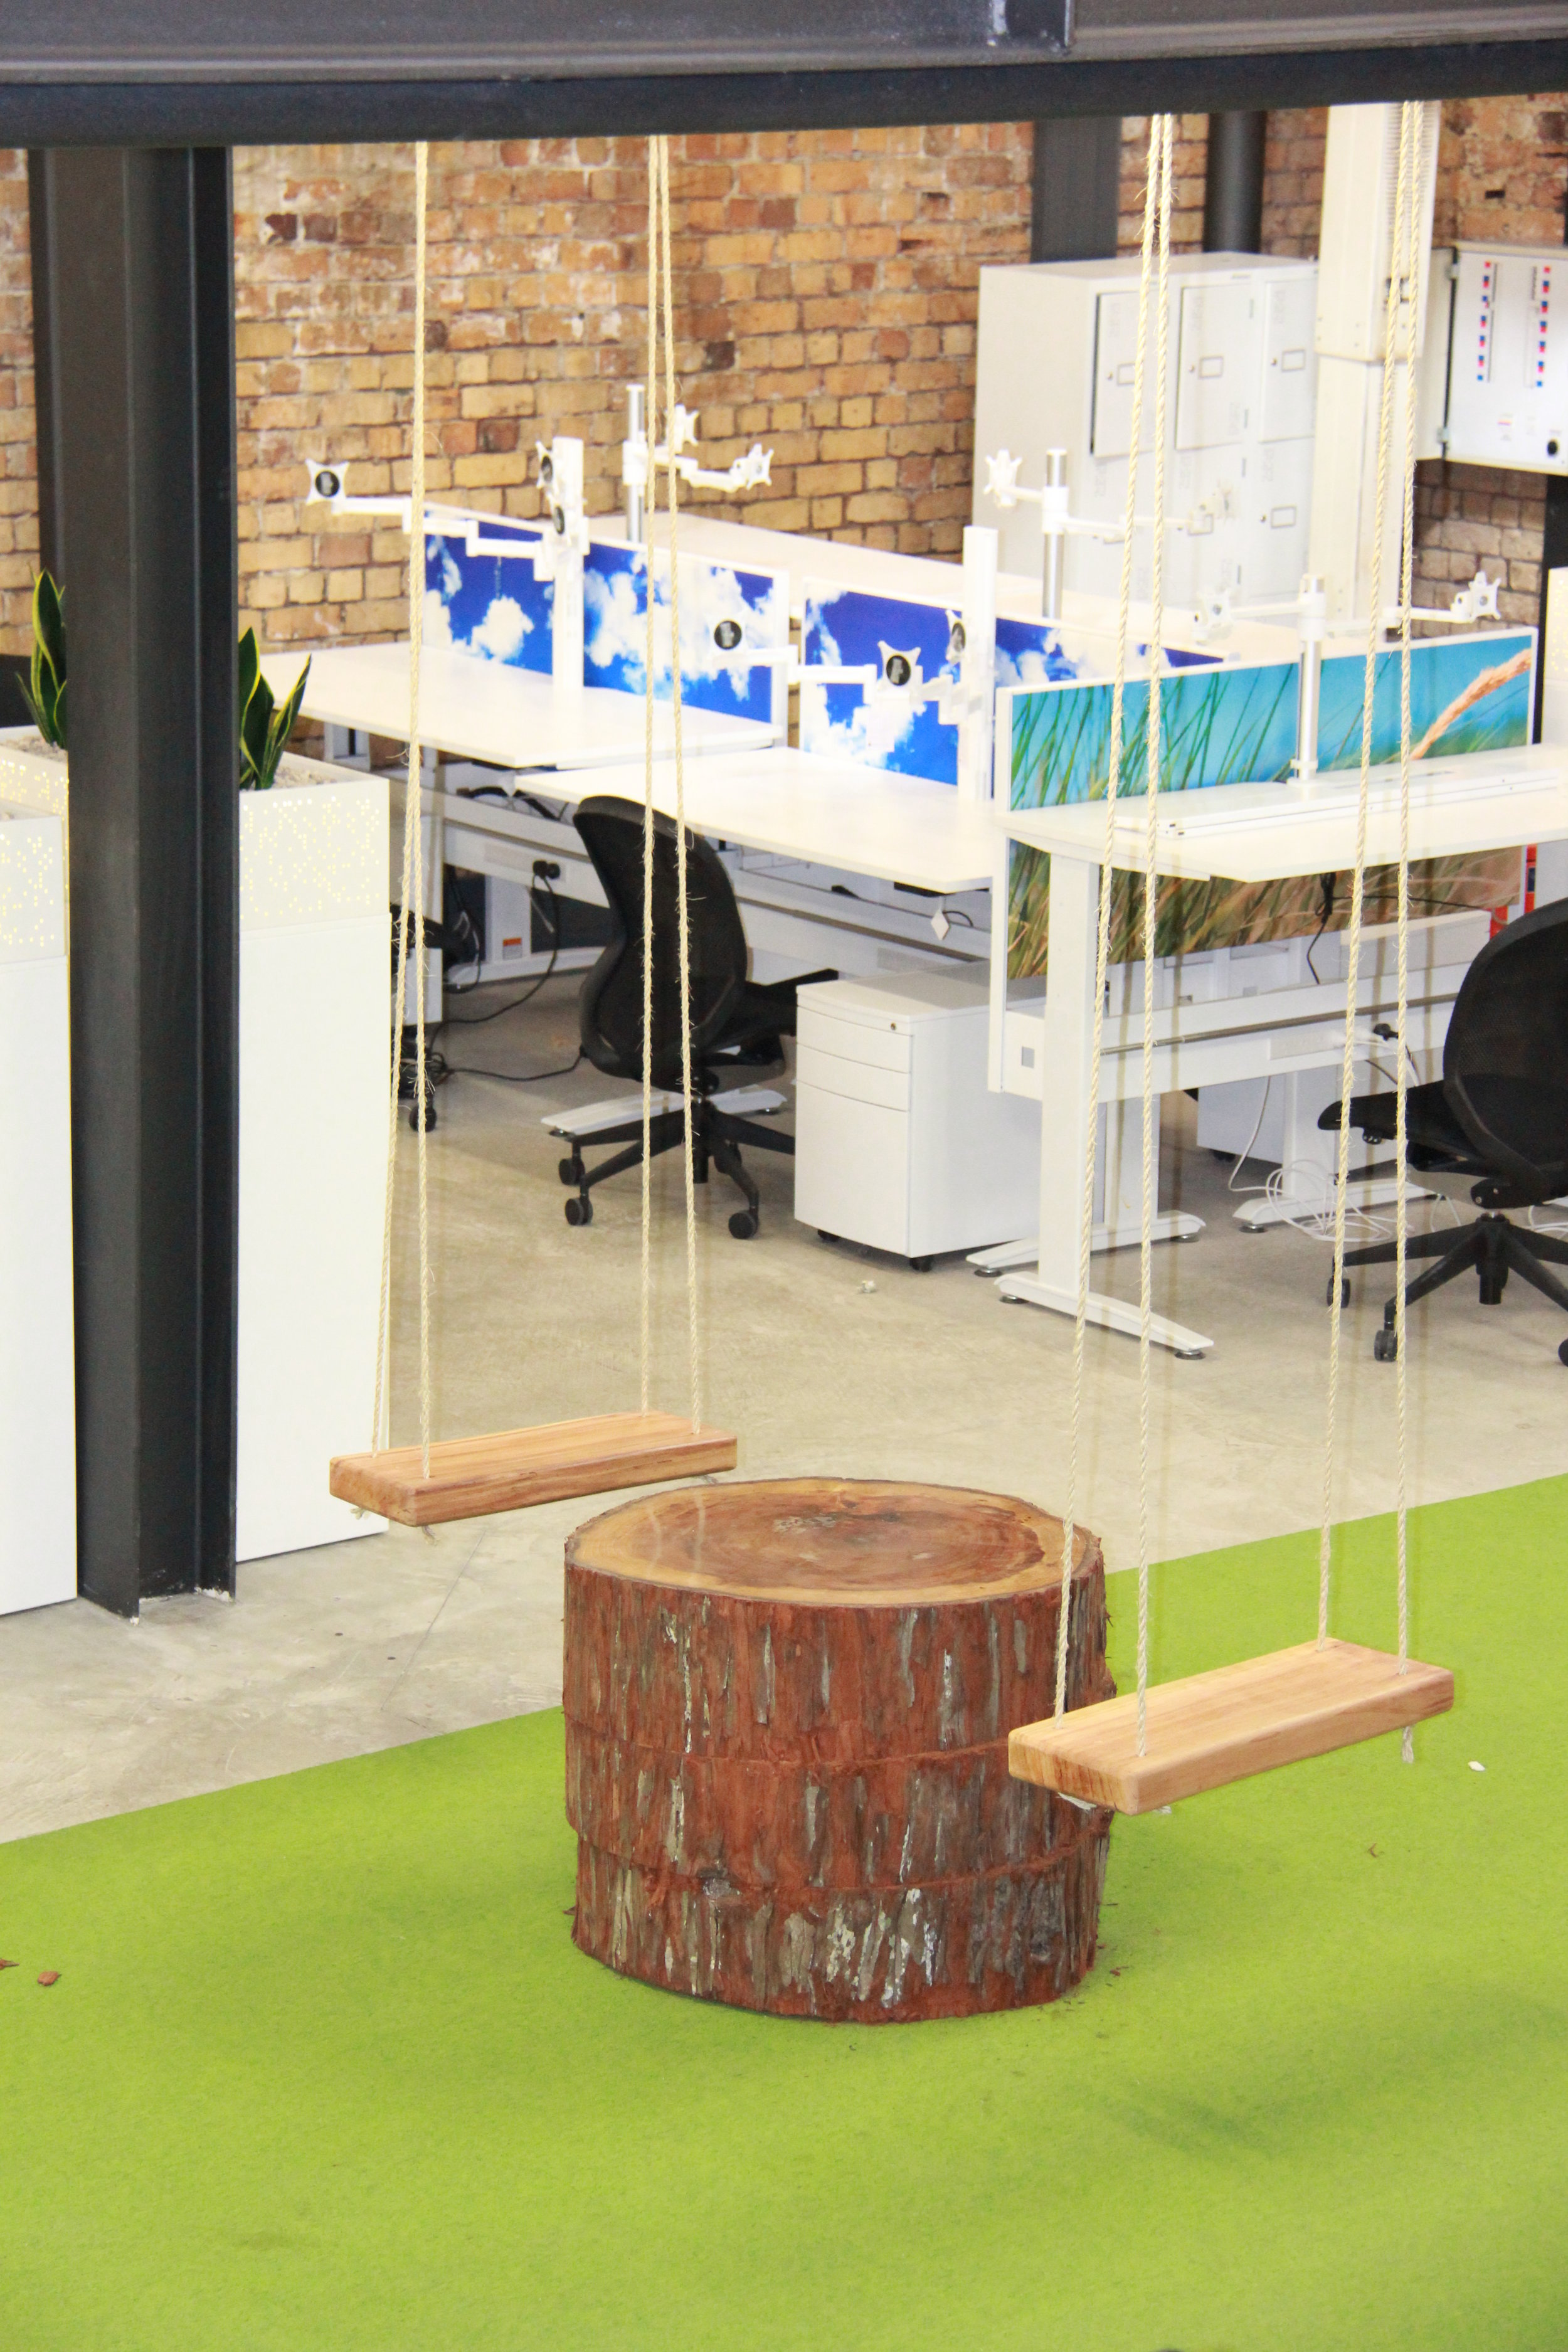 Creative natural design of swings in the workplace